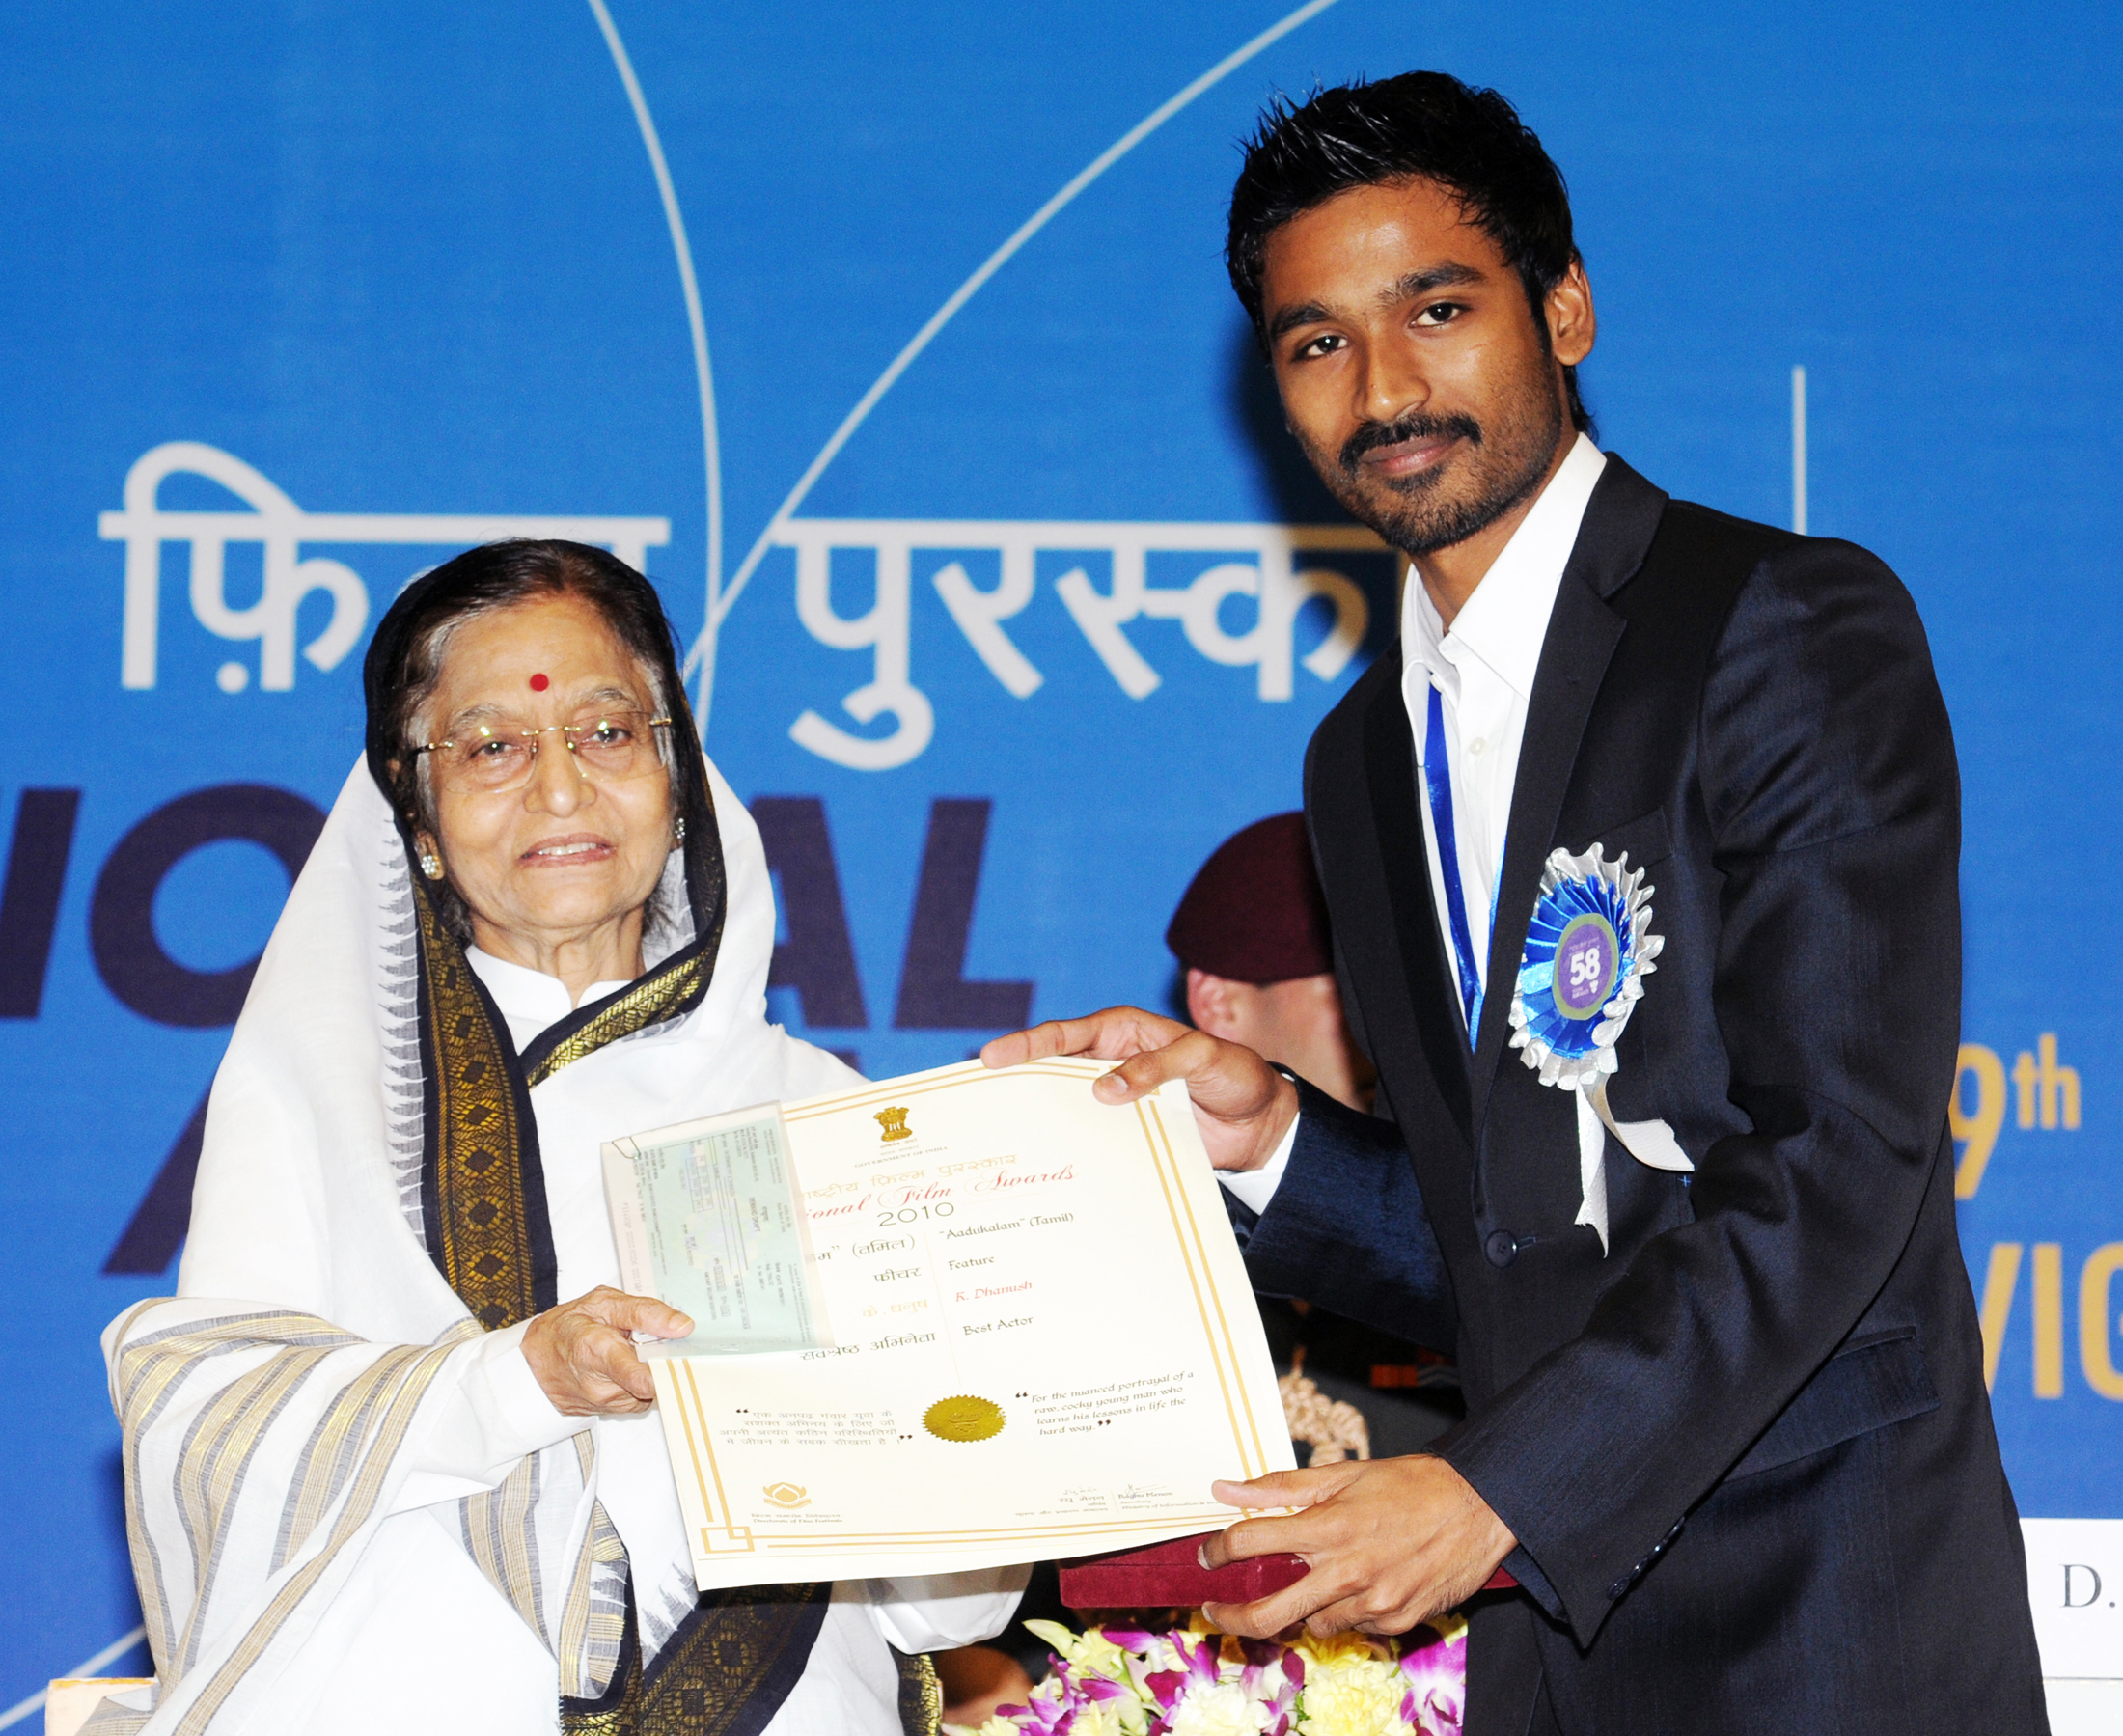 List of awards and nominations received by Dhanush - Wikipedia